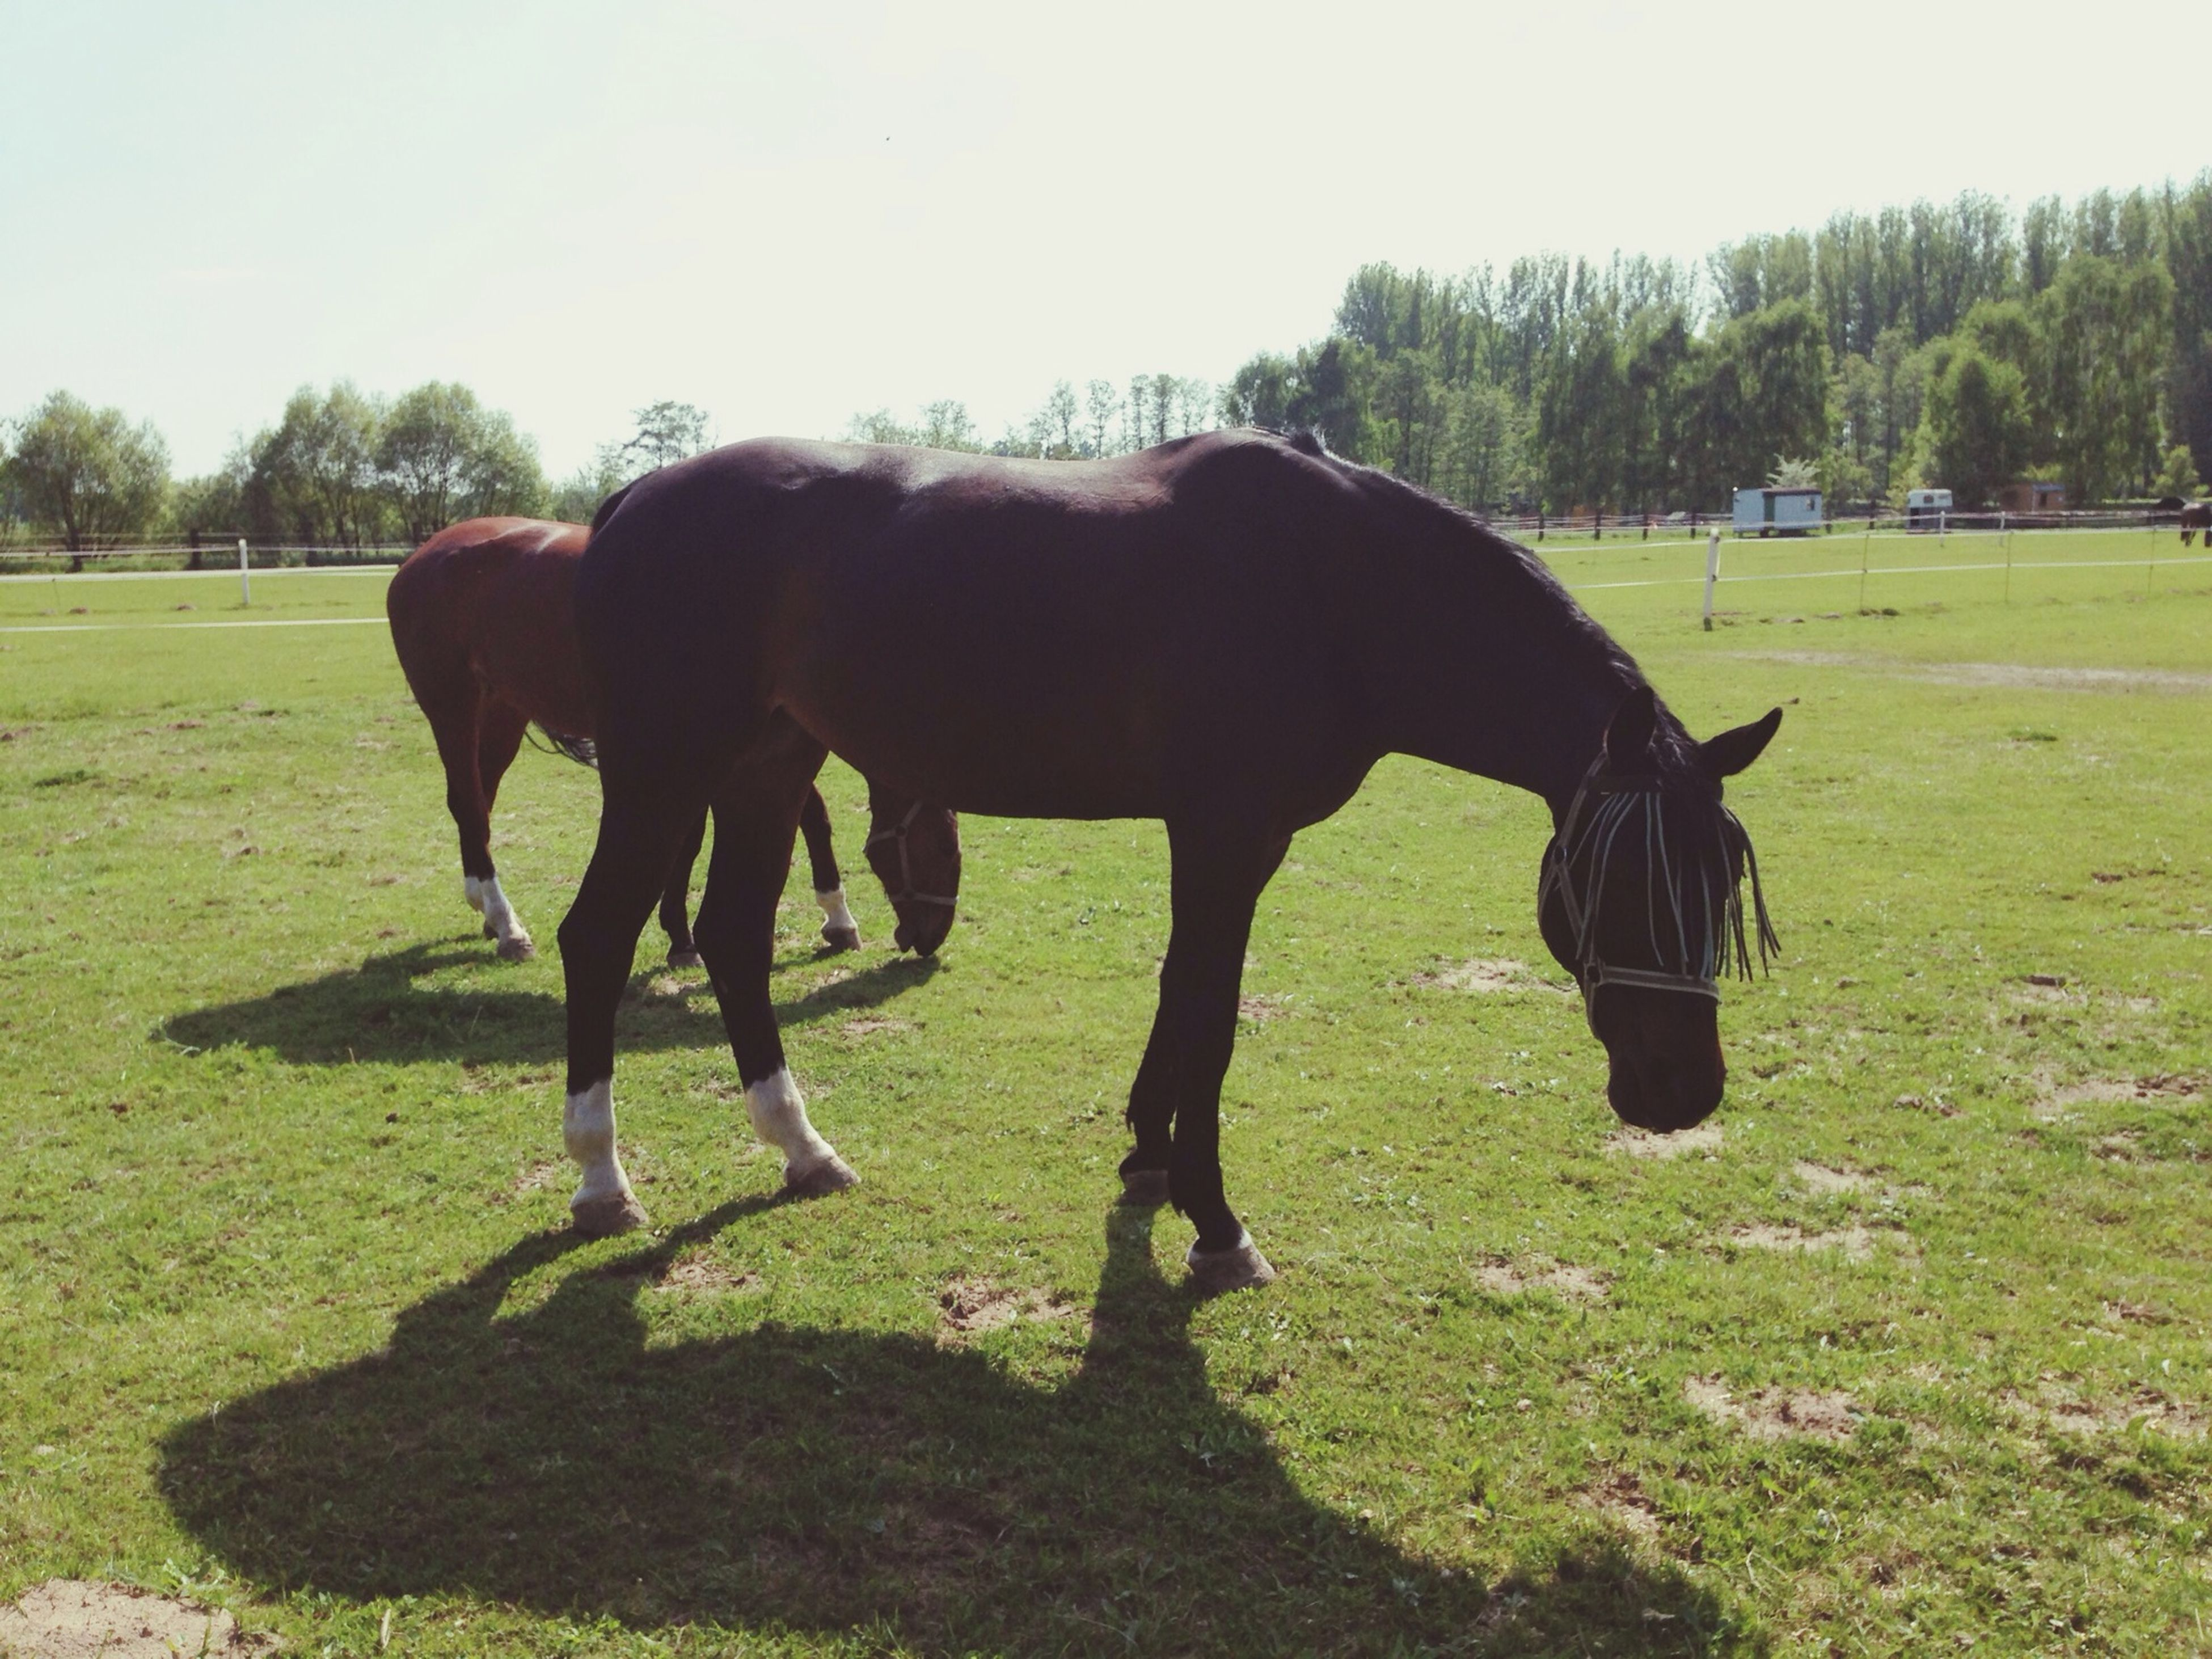 domestic animals, animal themes, grass, horse, mammal, field, full length, grassy, one animal, two animals, livestock, standing, green color, working animal, pets, tree, side view, day, sunlight, nature